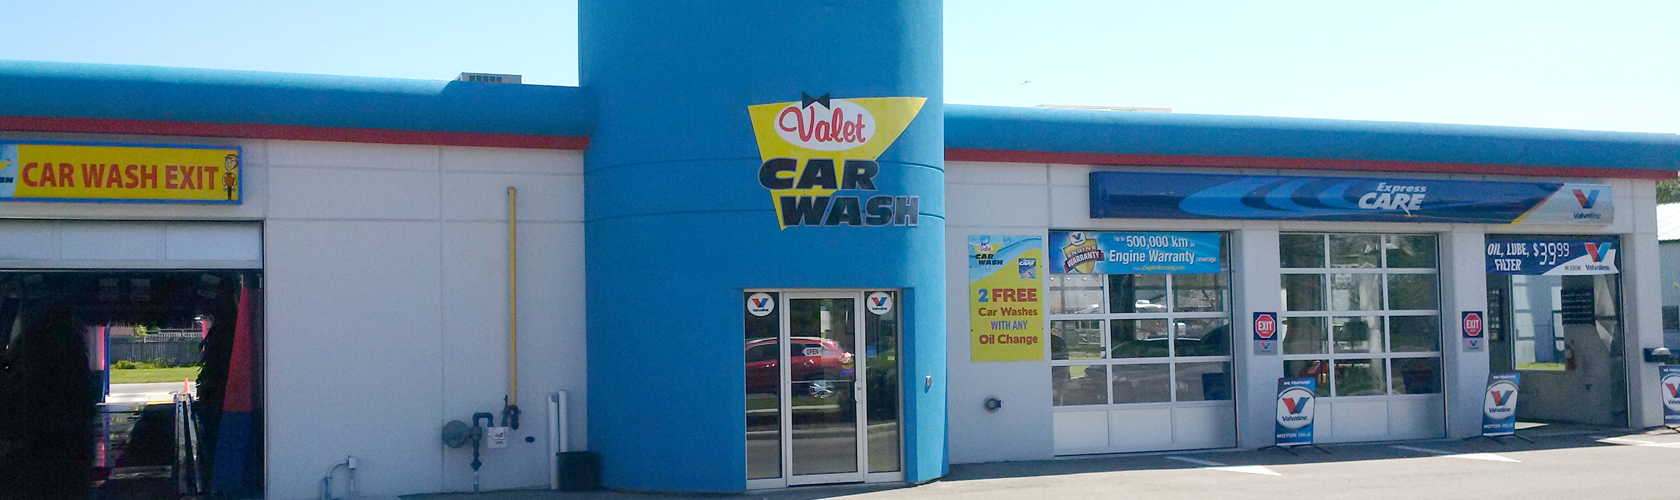 Valet car wash cambridge on solutioingenieria Images